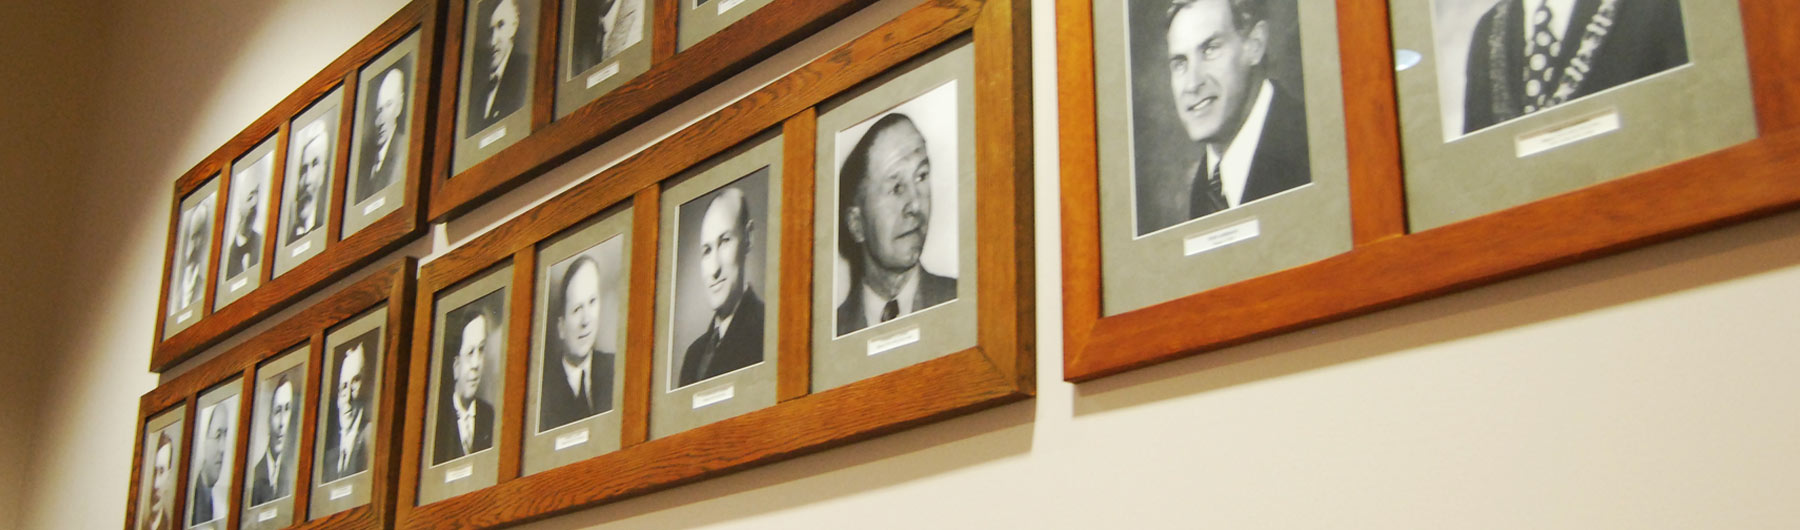 image of past mayors in frames on a wall in council chambers